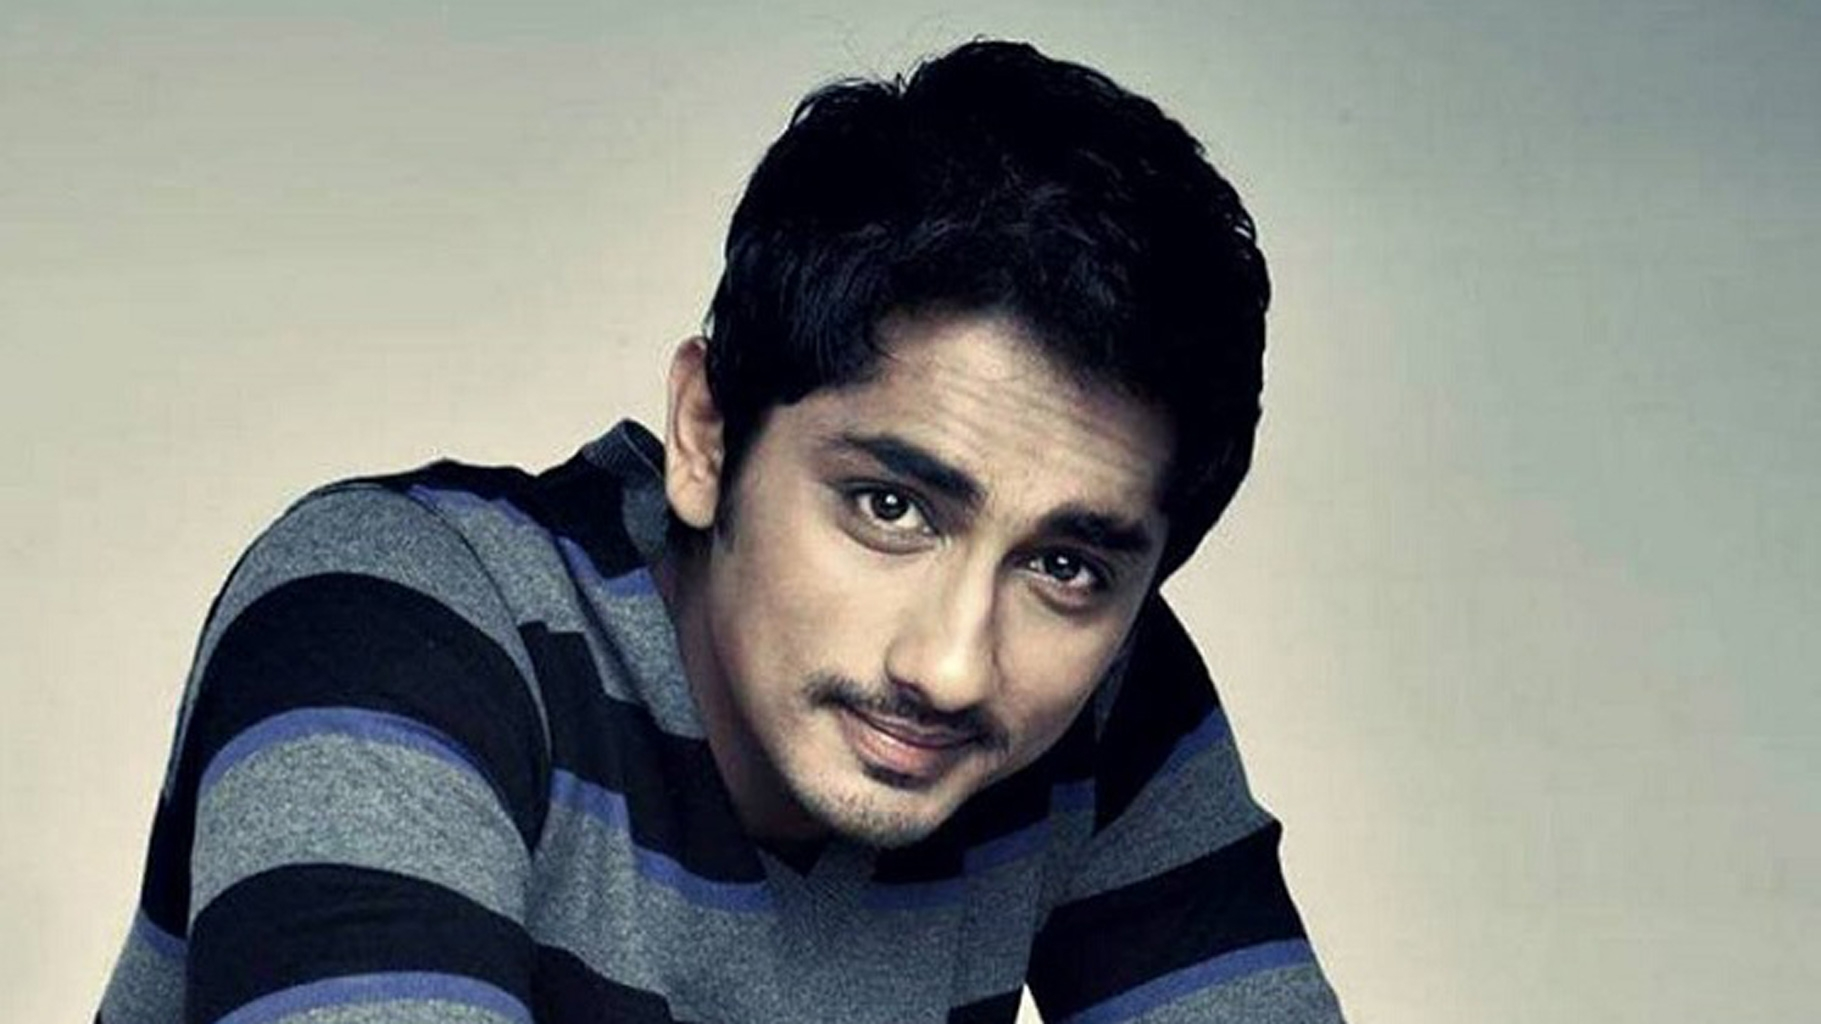 Siddharth Vows to Delete Twitter If Modi Doesn't Win Second Term